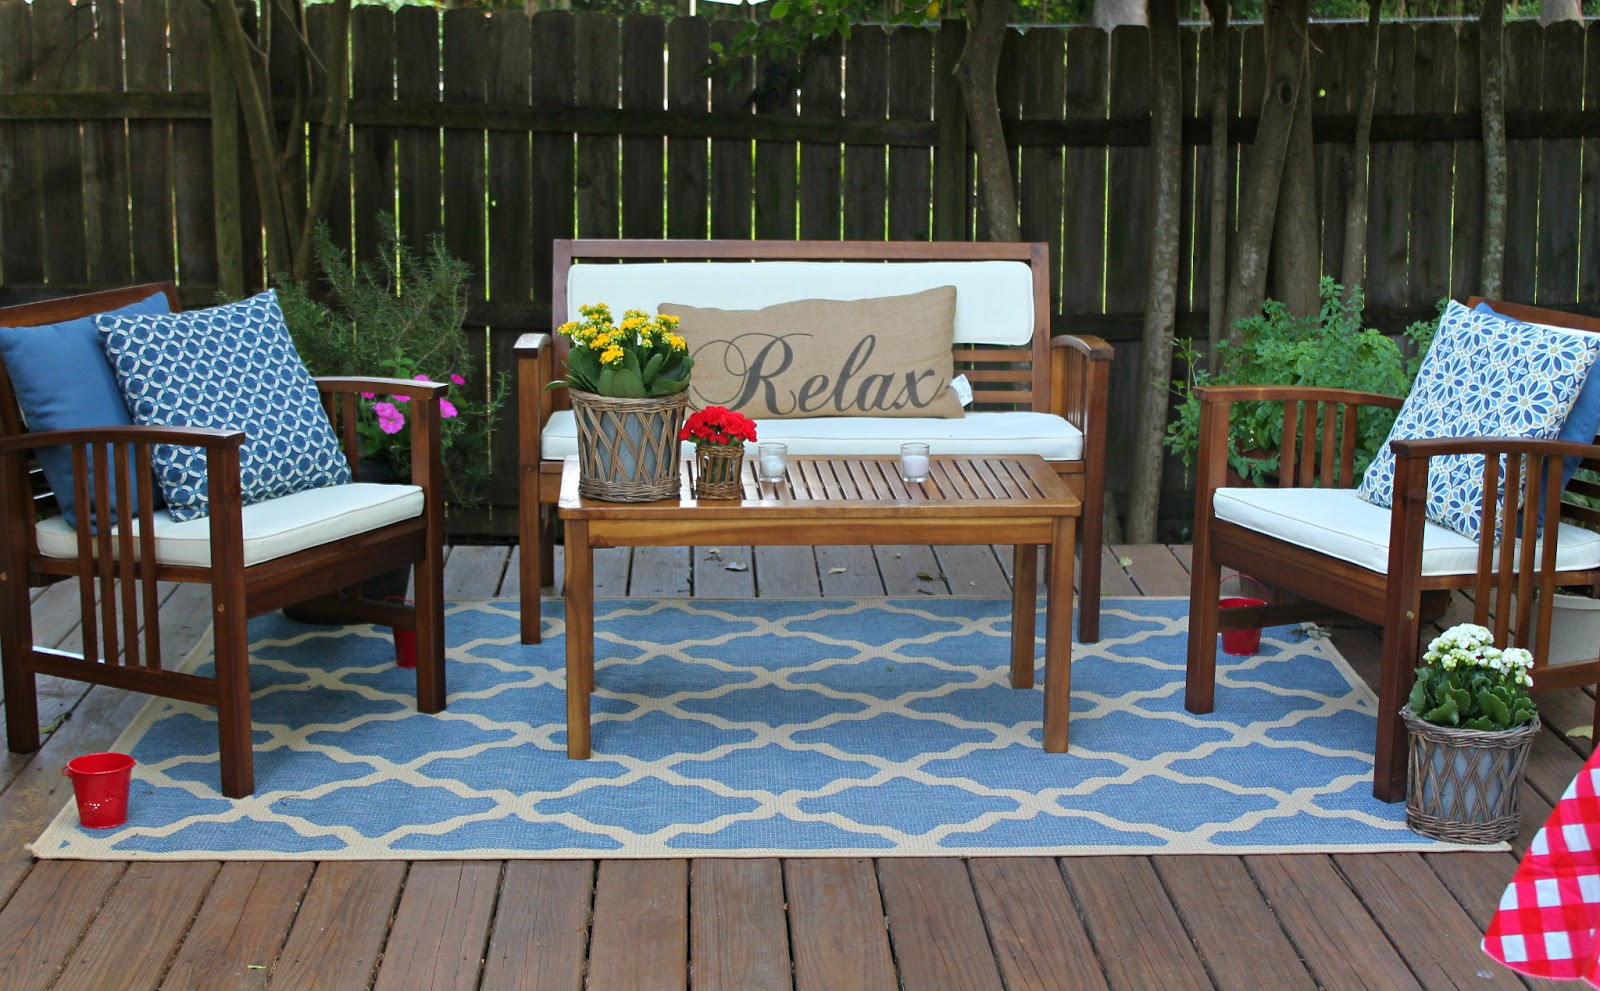 world market outdoor rugs Make an Exciting Zone in Your Patio with World Market Outdoor Rugs  world market outdoor rugs